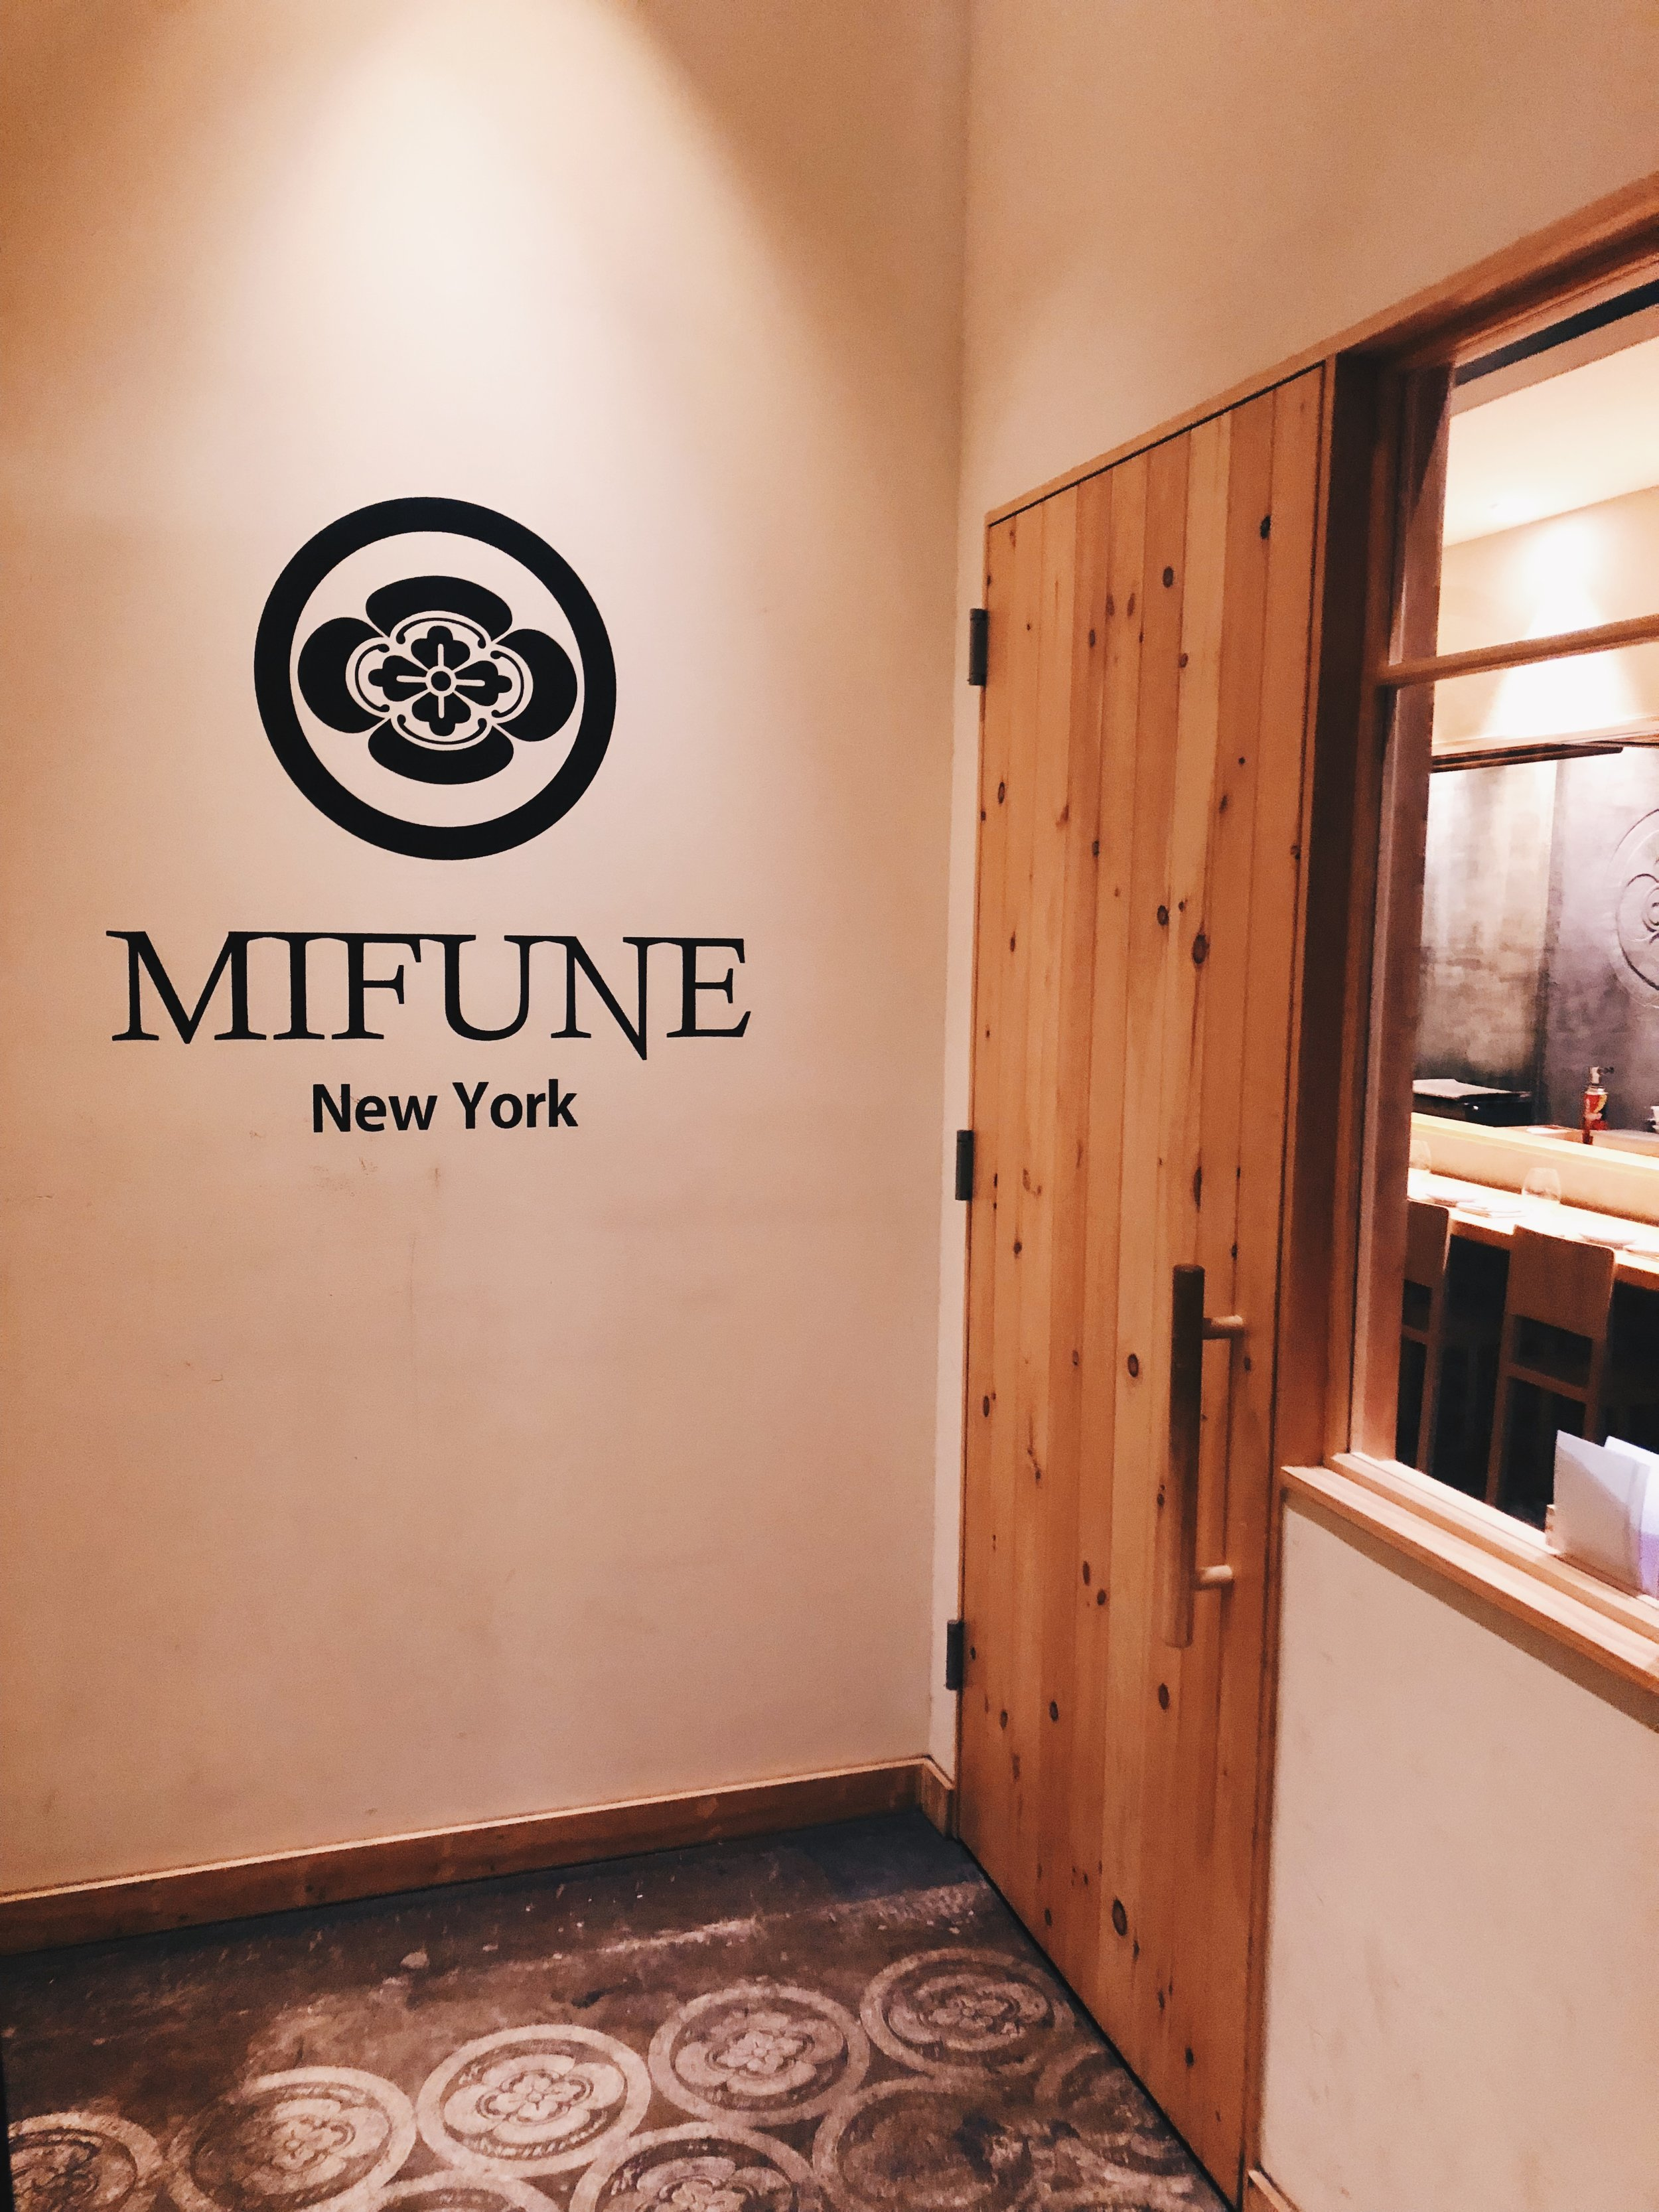 MIFUNE New York entrance